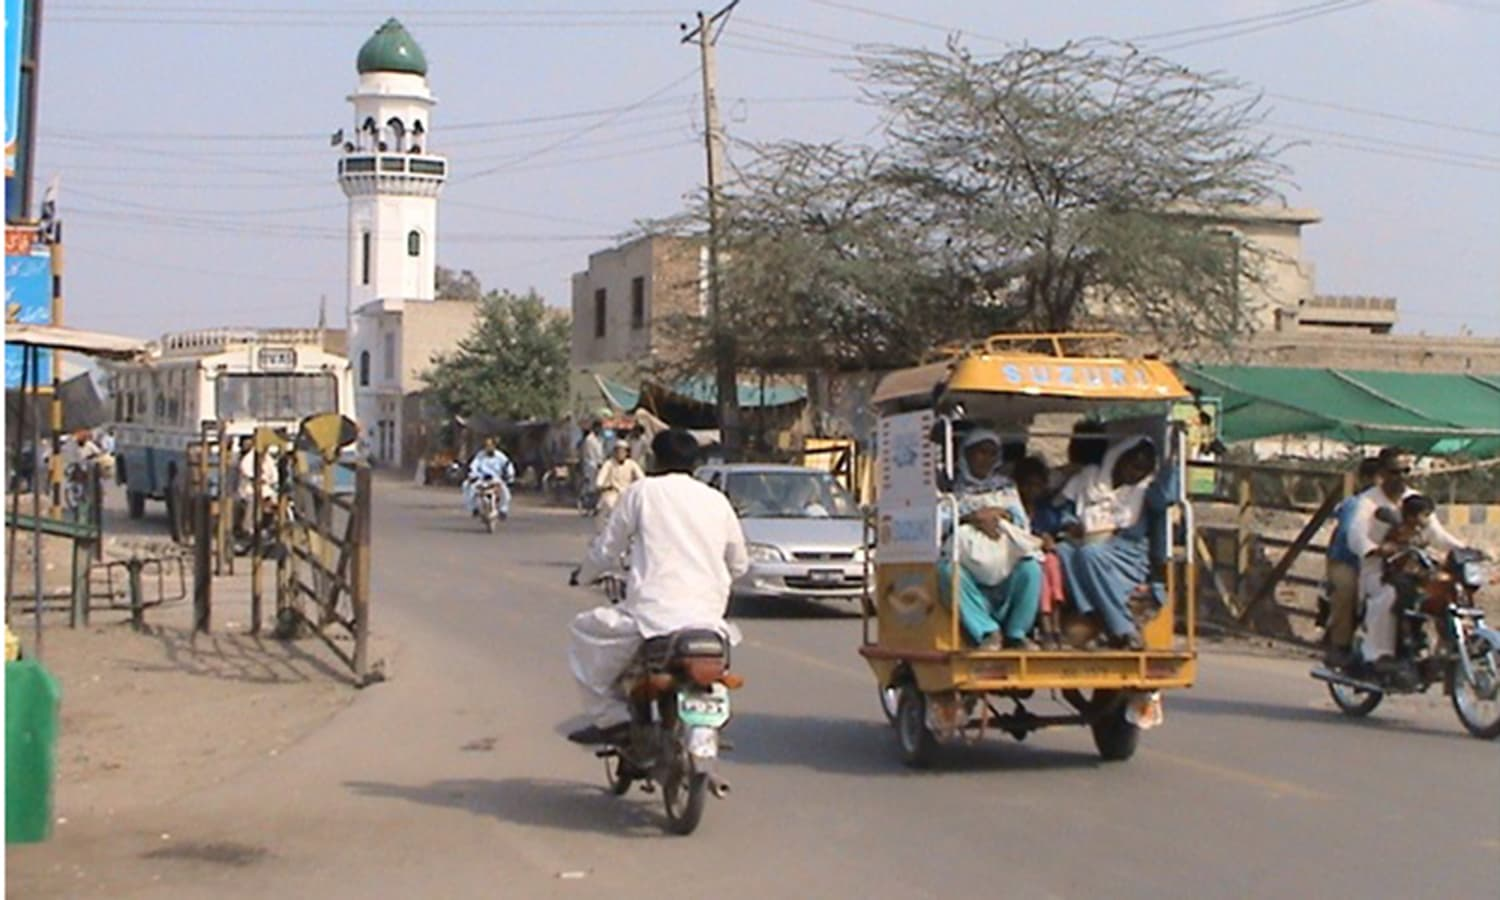 Punjab's Jhang city. It has witnessed sectarian clashes and tensions ever since the late 1980s.